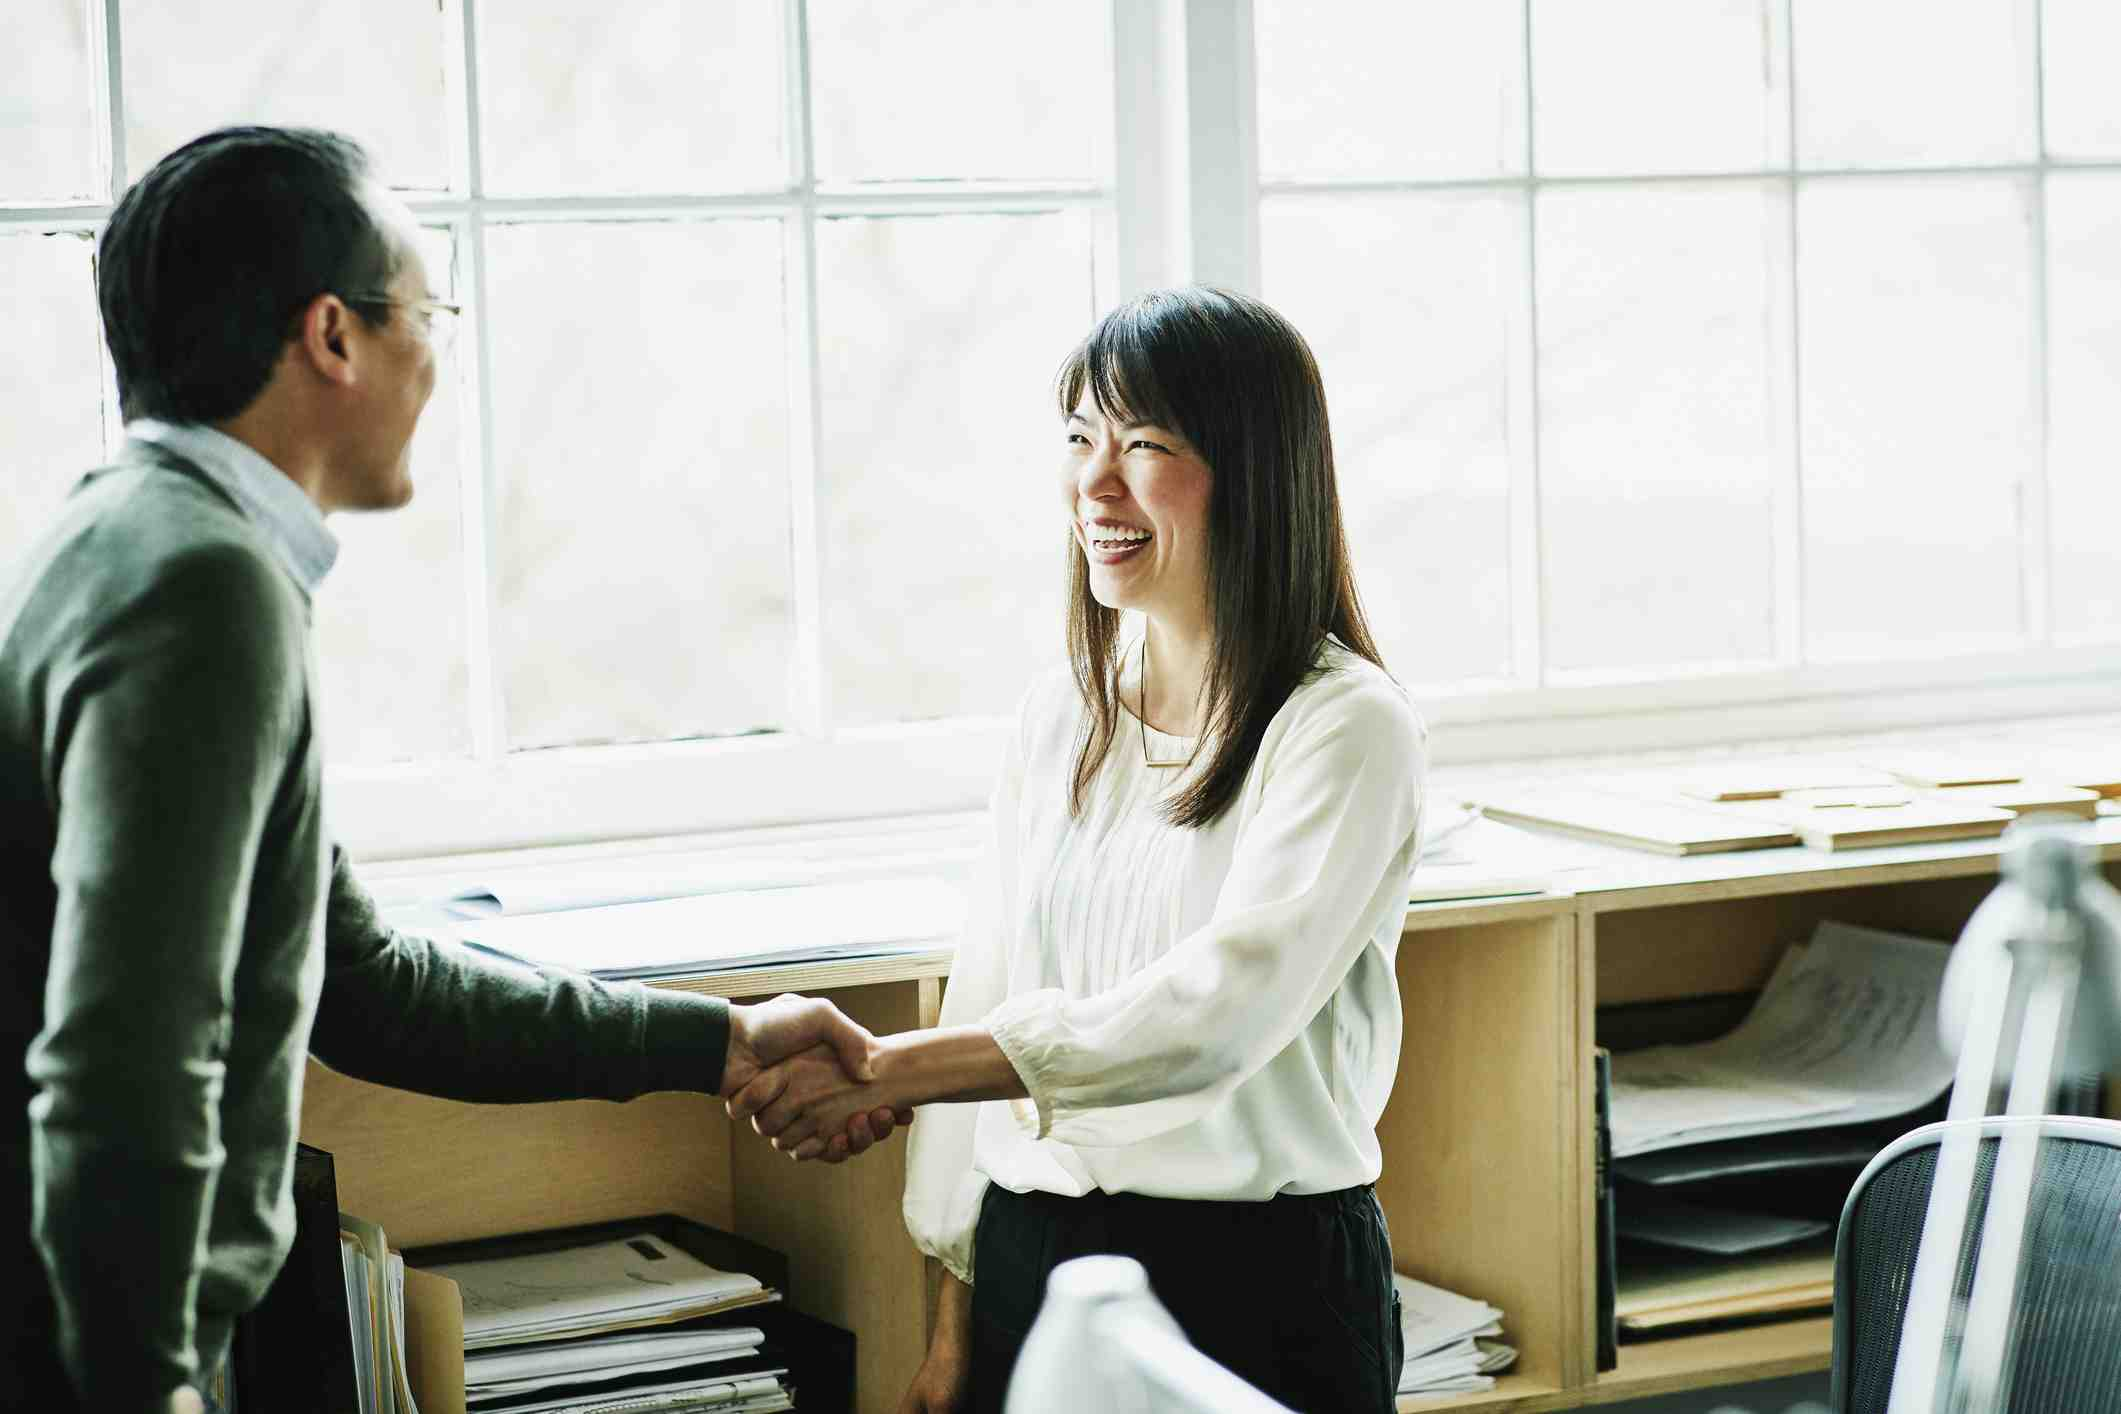 What is a good question to ask at the end of an interview?